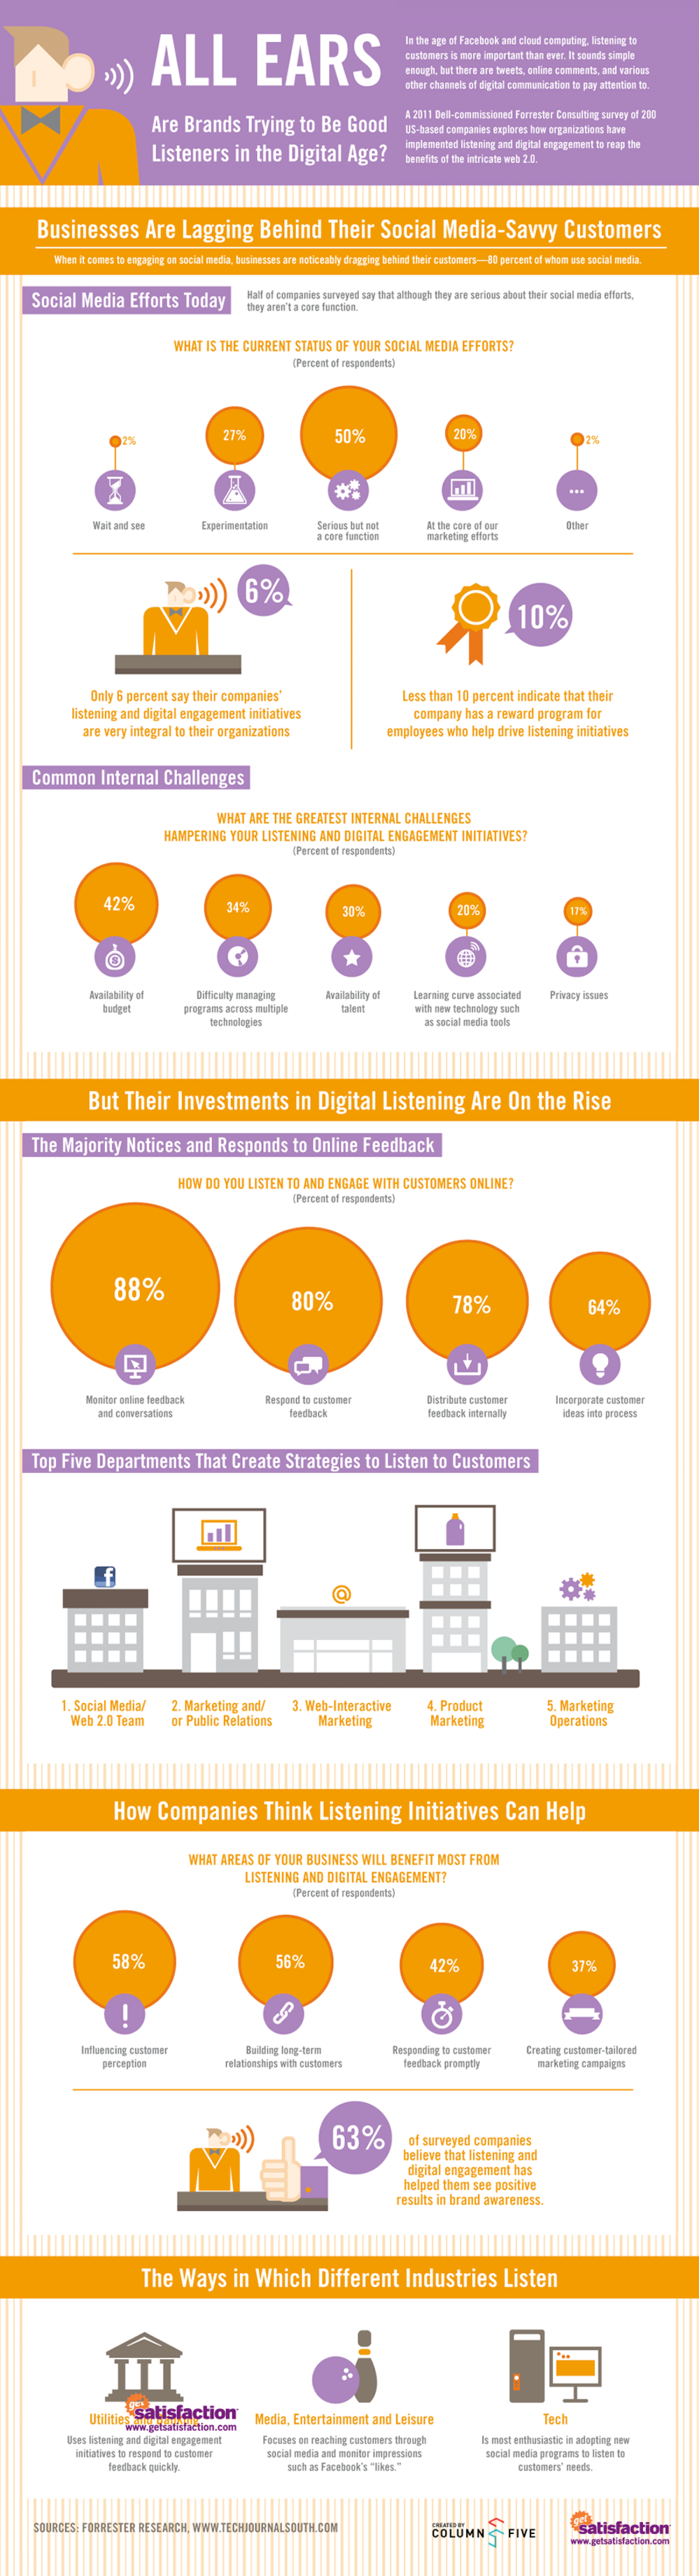 How Brands Listen in the Digital Age Infographic